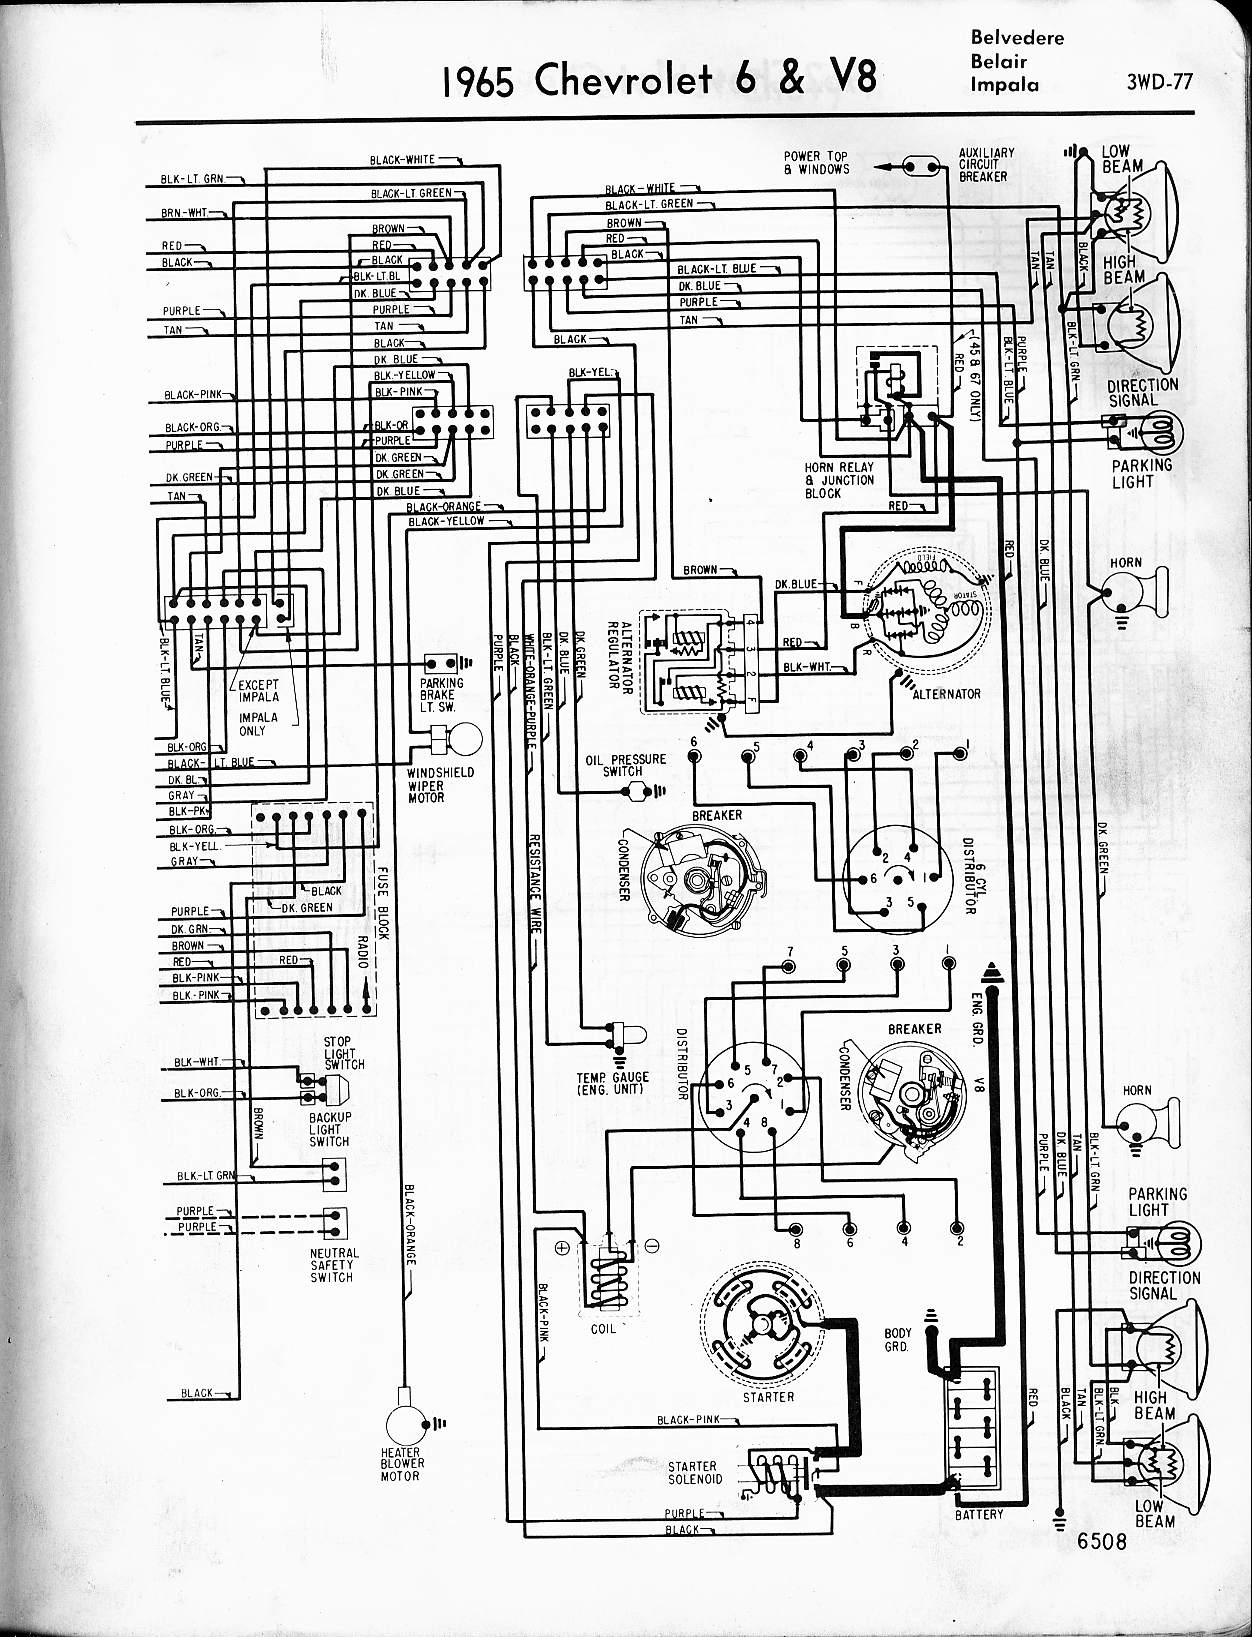 MWireChev65_3WD 077 chevy diagrams 65 chevy wiring harness at suagrazia.org